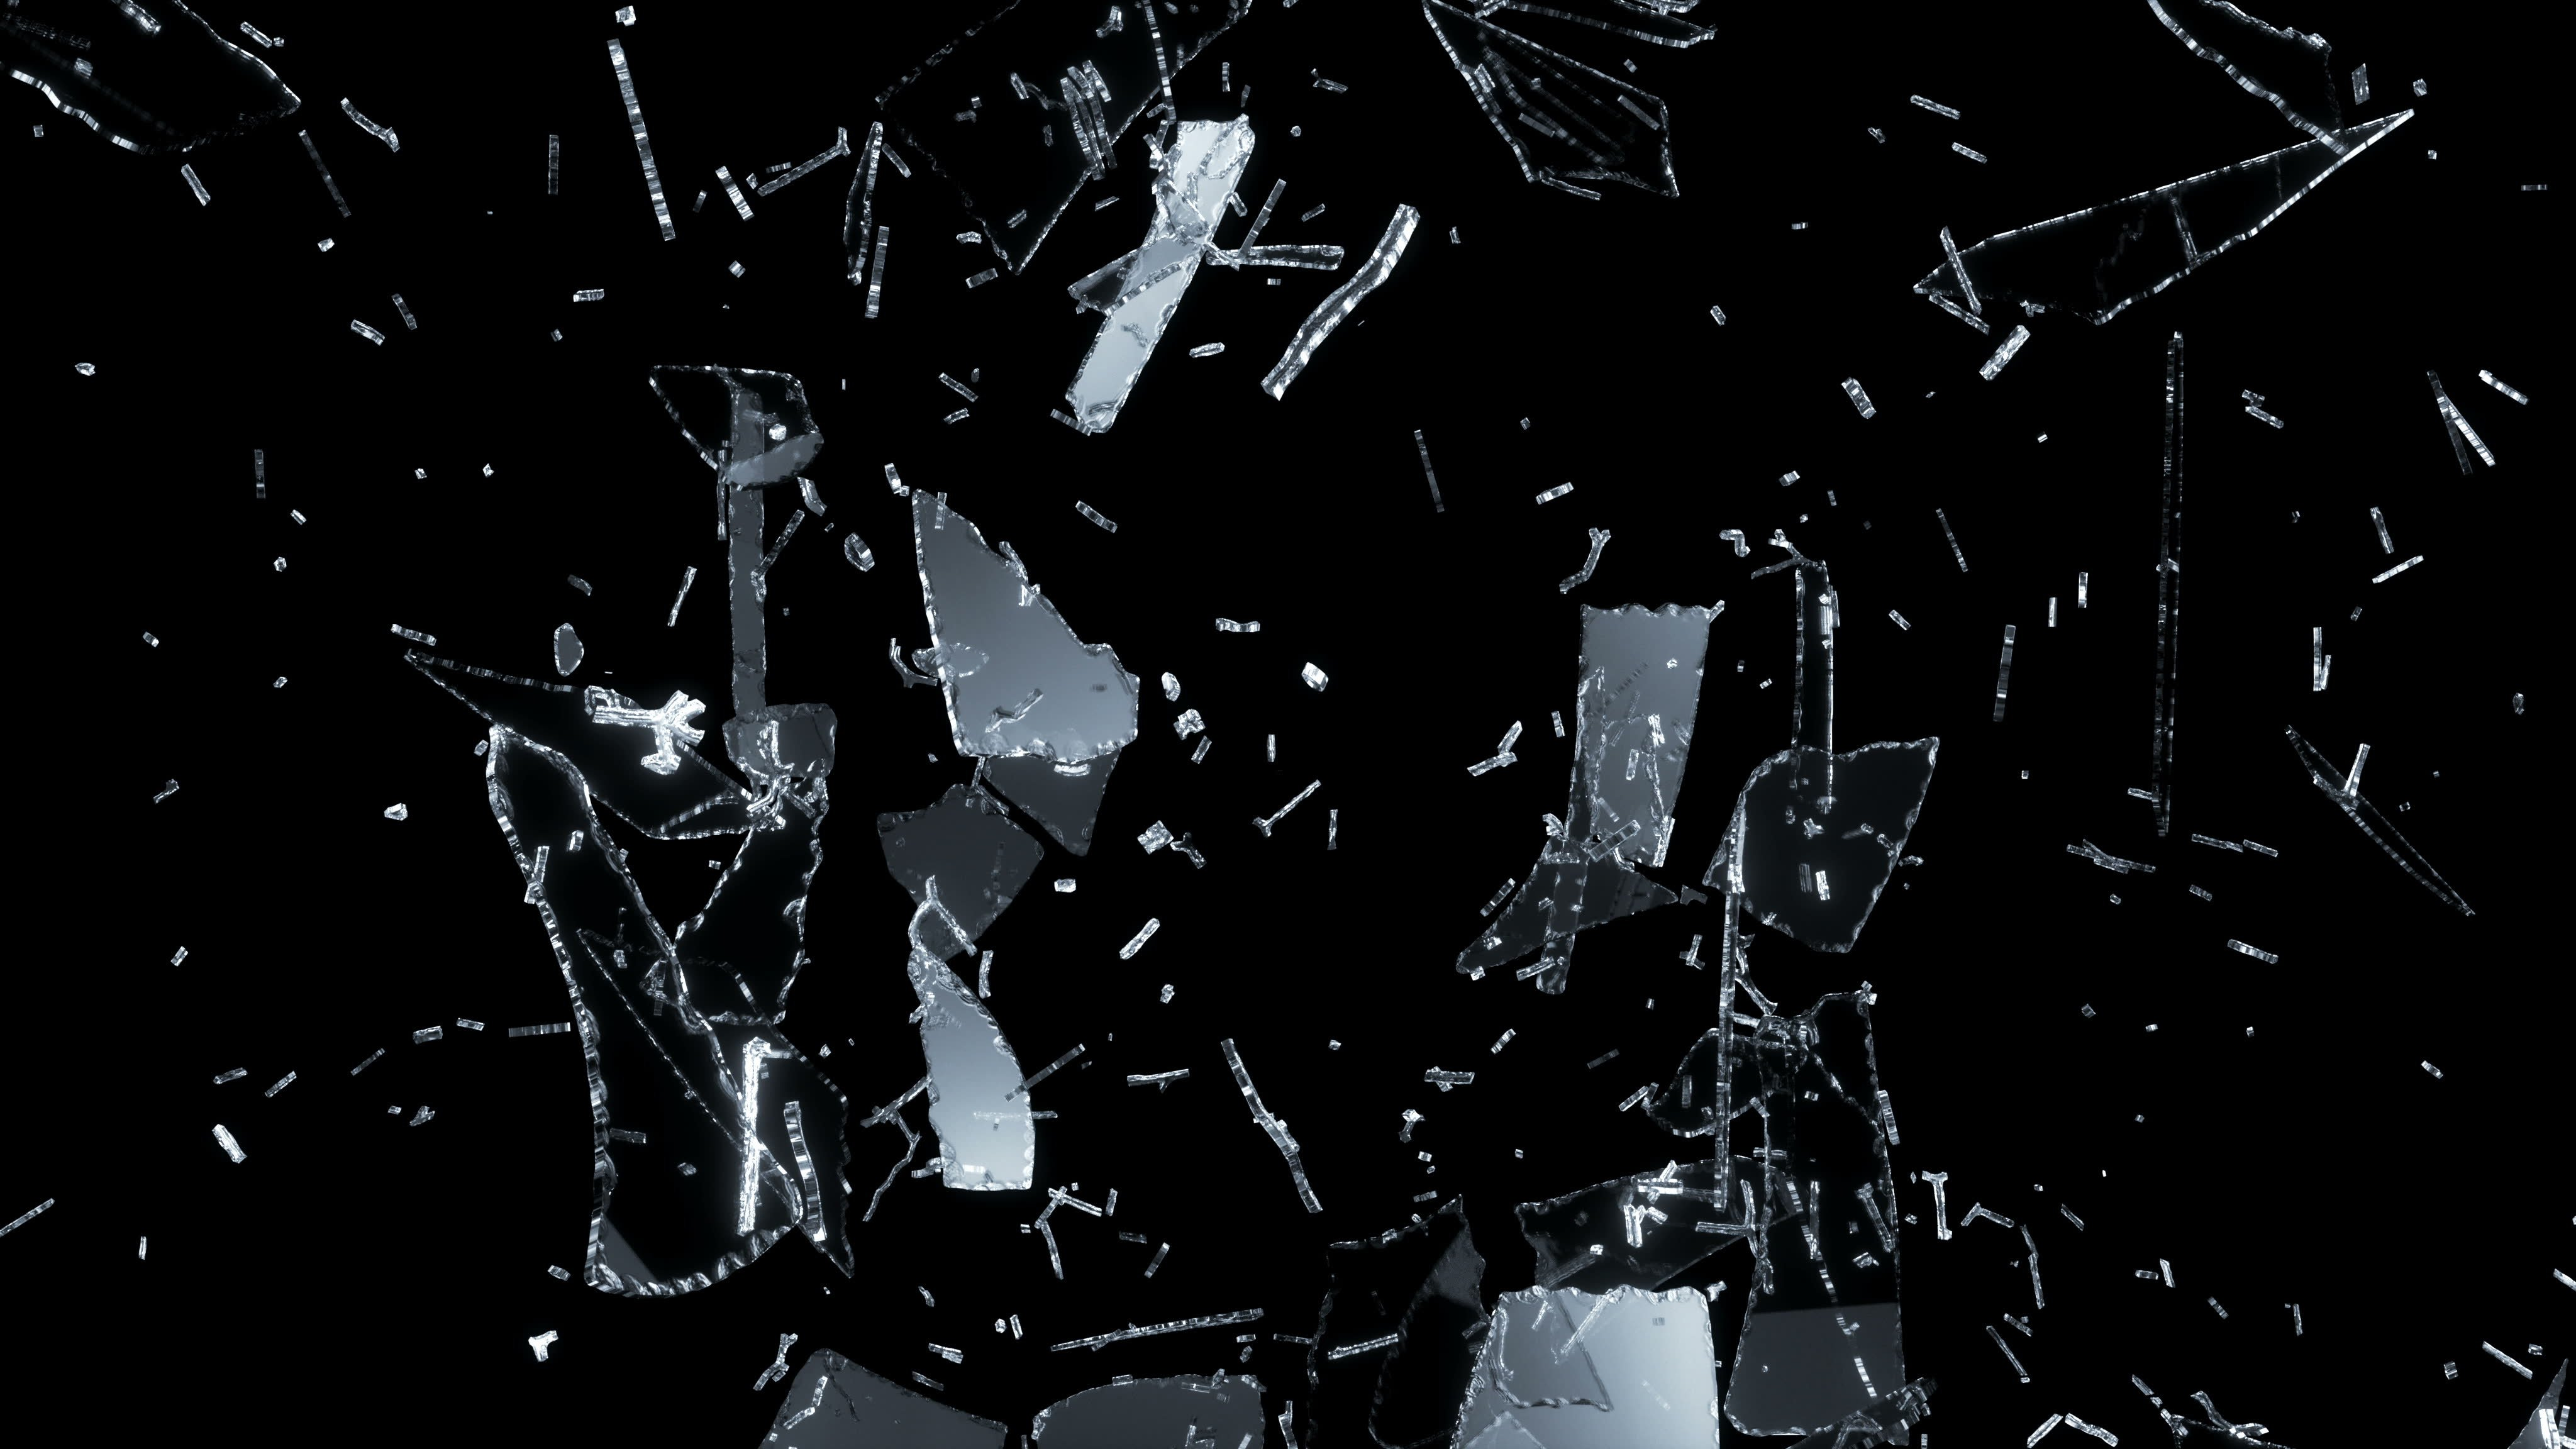 Broken Glass Wallpapers